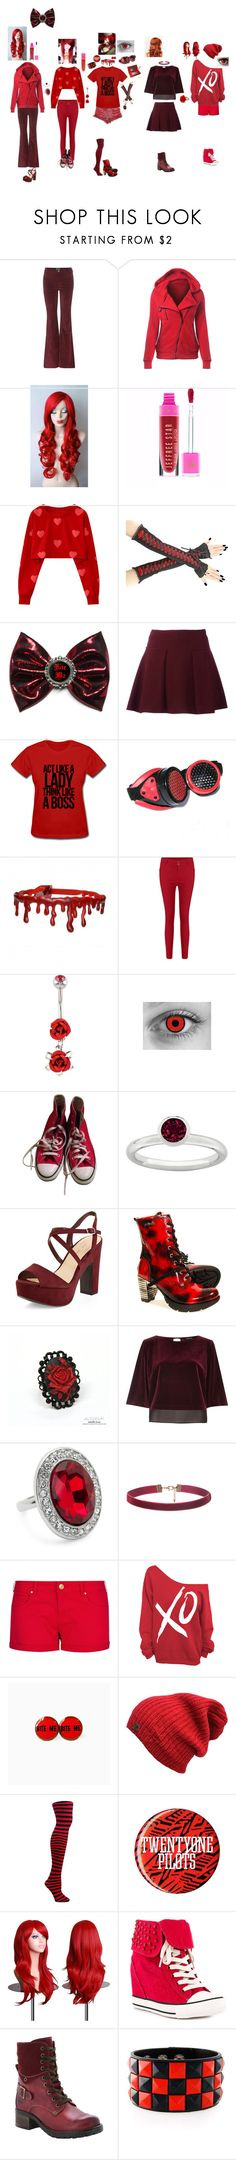 """""""Red outfit event"""" by oh0601 ❤ liked on Polyvore featuring M.i.h Jeans, Killstar, Converse, New Look, River Island, Jon Richard, MANGO, xO Design, Rock & Candy and taos Footwear"""